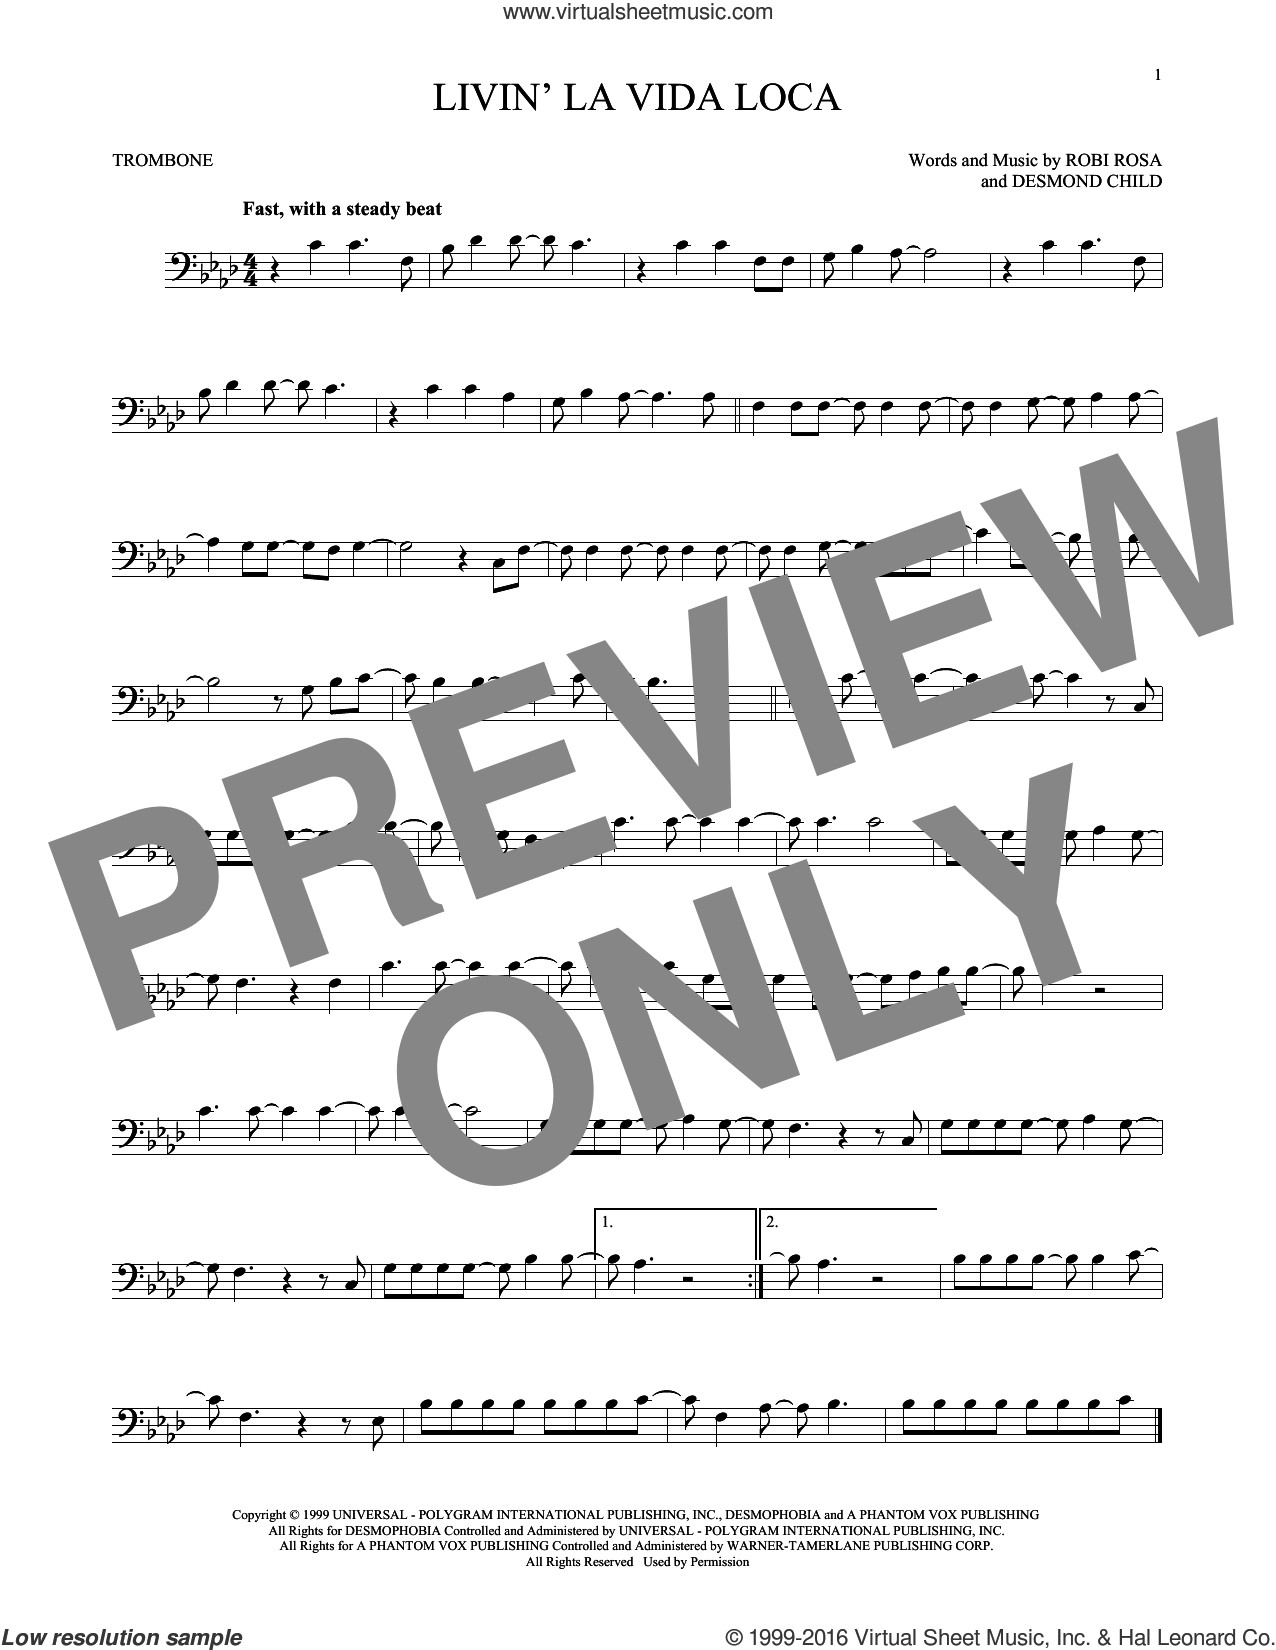 Livin' La Vida Loca sheet music for trombone solo by Ricky Martin, Desmond Child and Robi Rosa, intermediate skill level